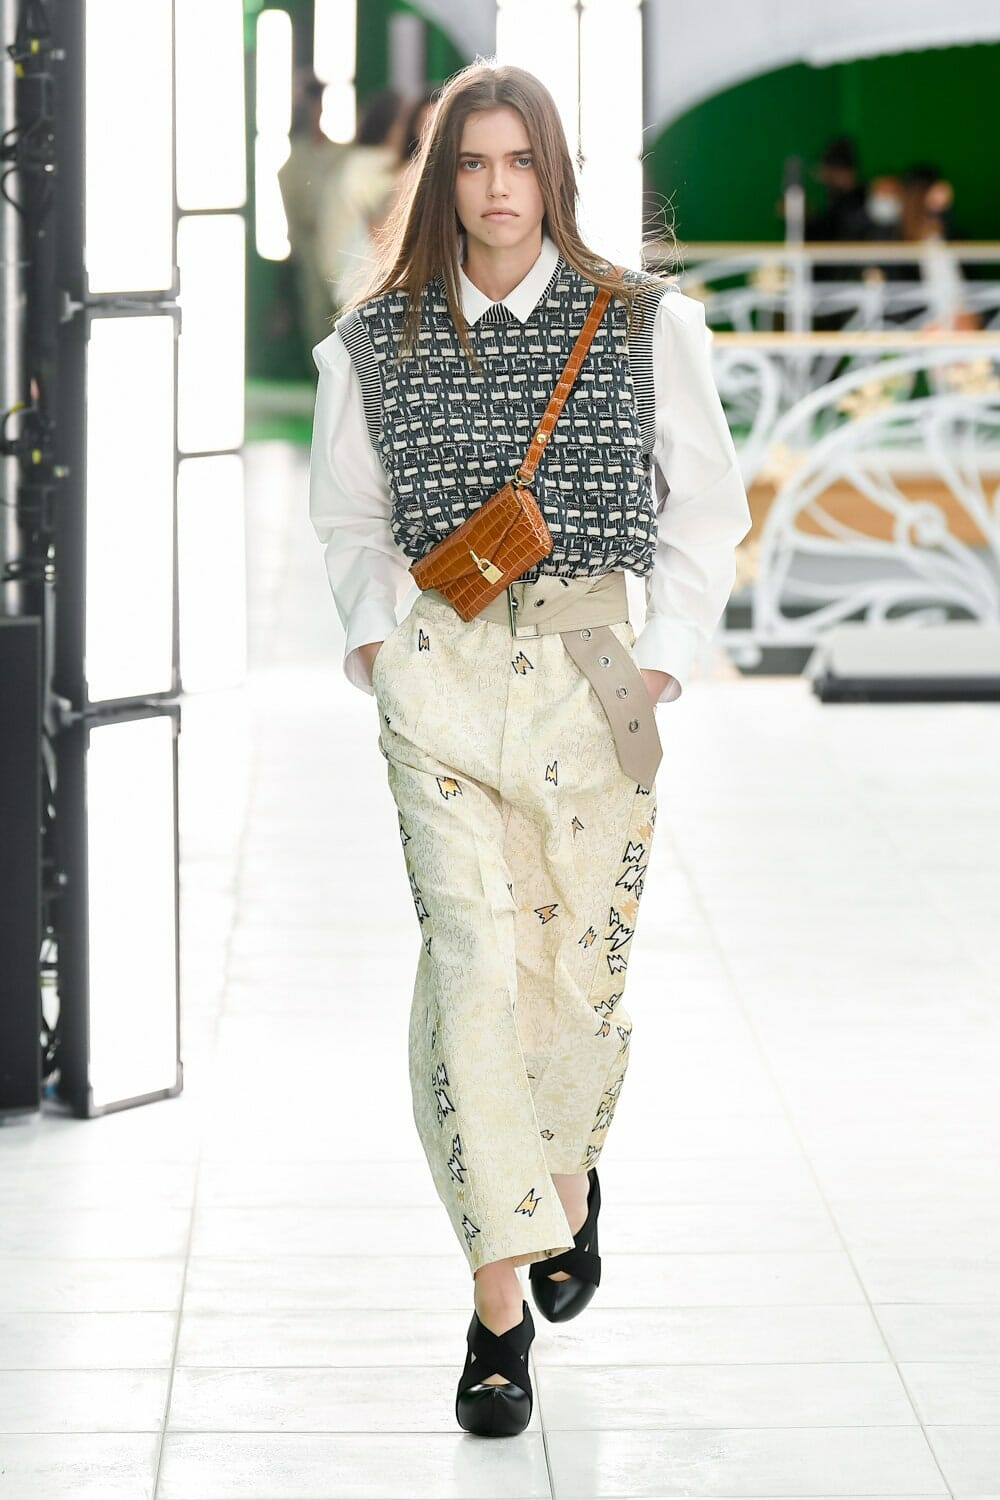 Louis Vuitton Spring Summer 2021. RUNWAY MAGAZINE ® Collections. RUNWAY NOW / RUNWAY NEW